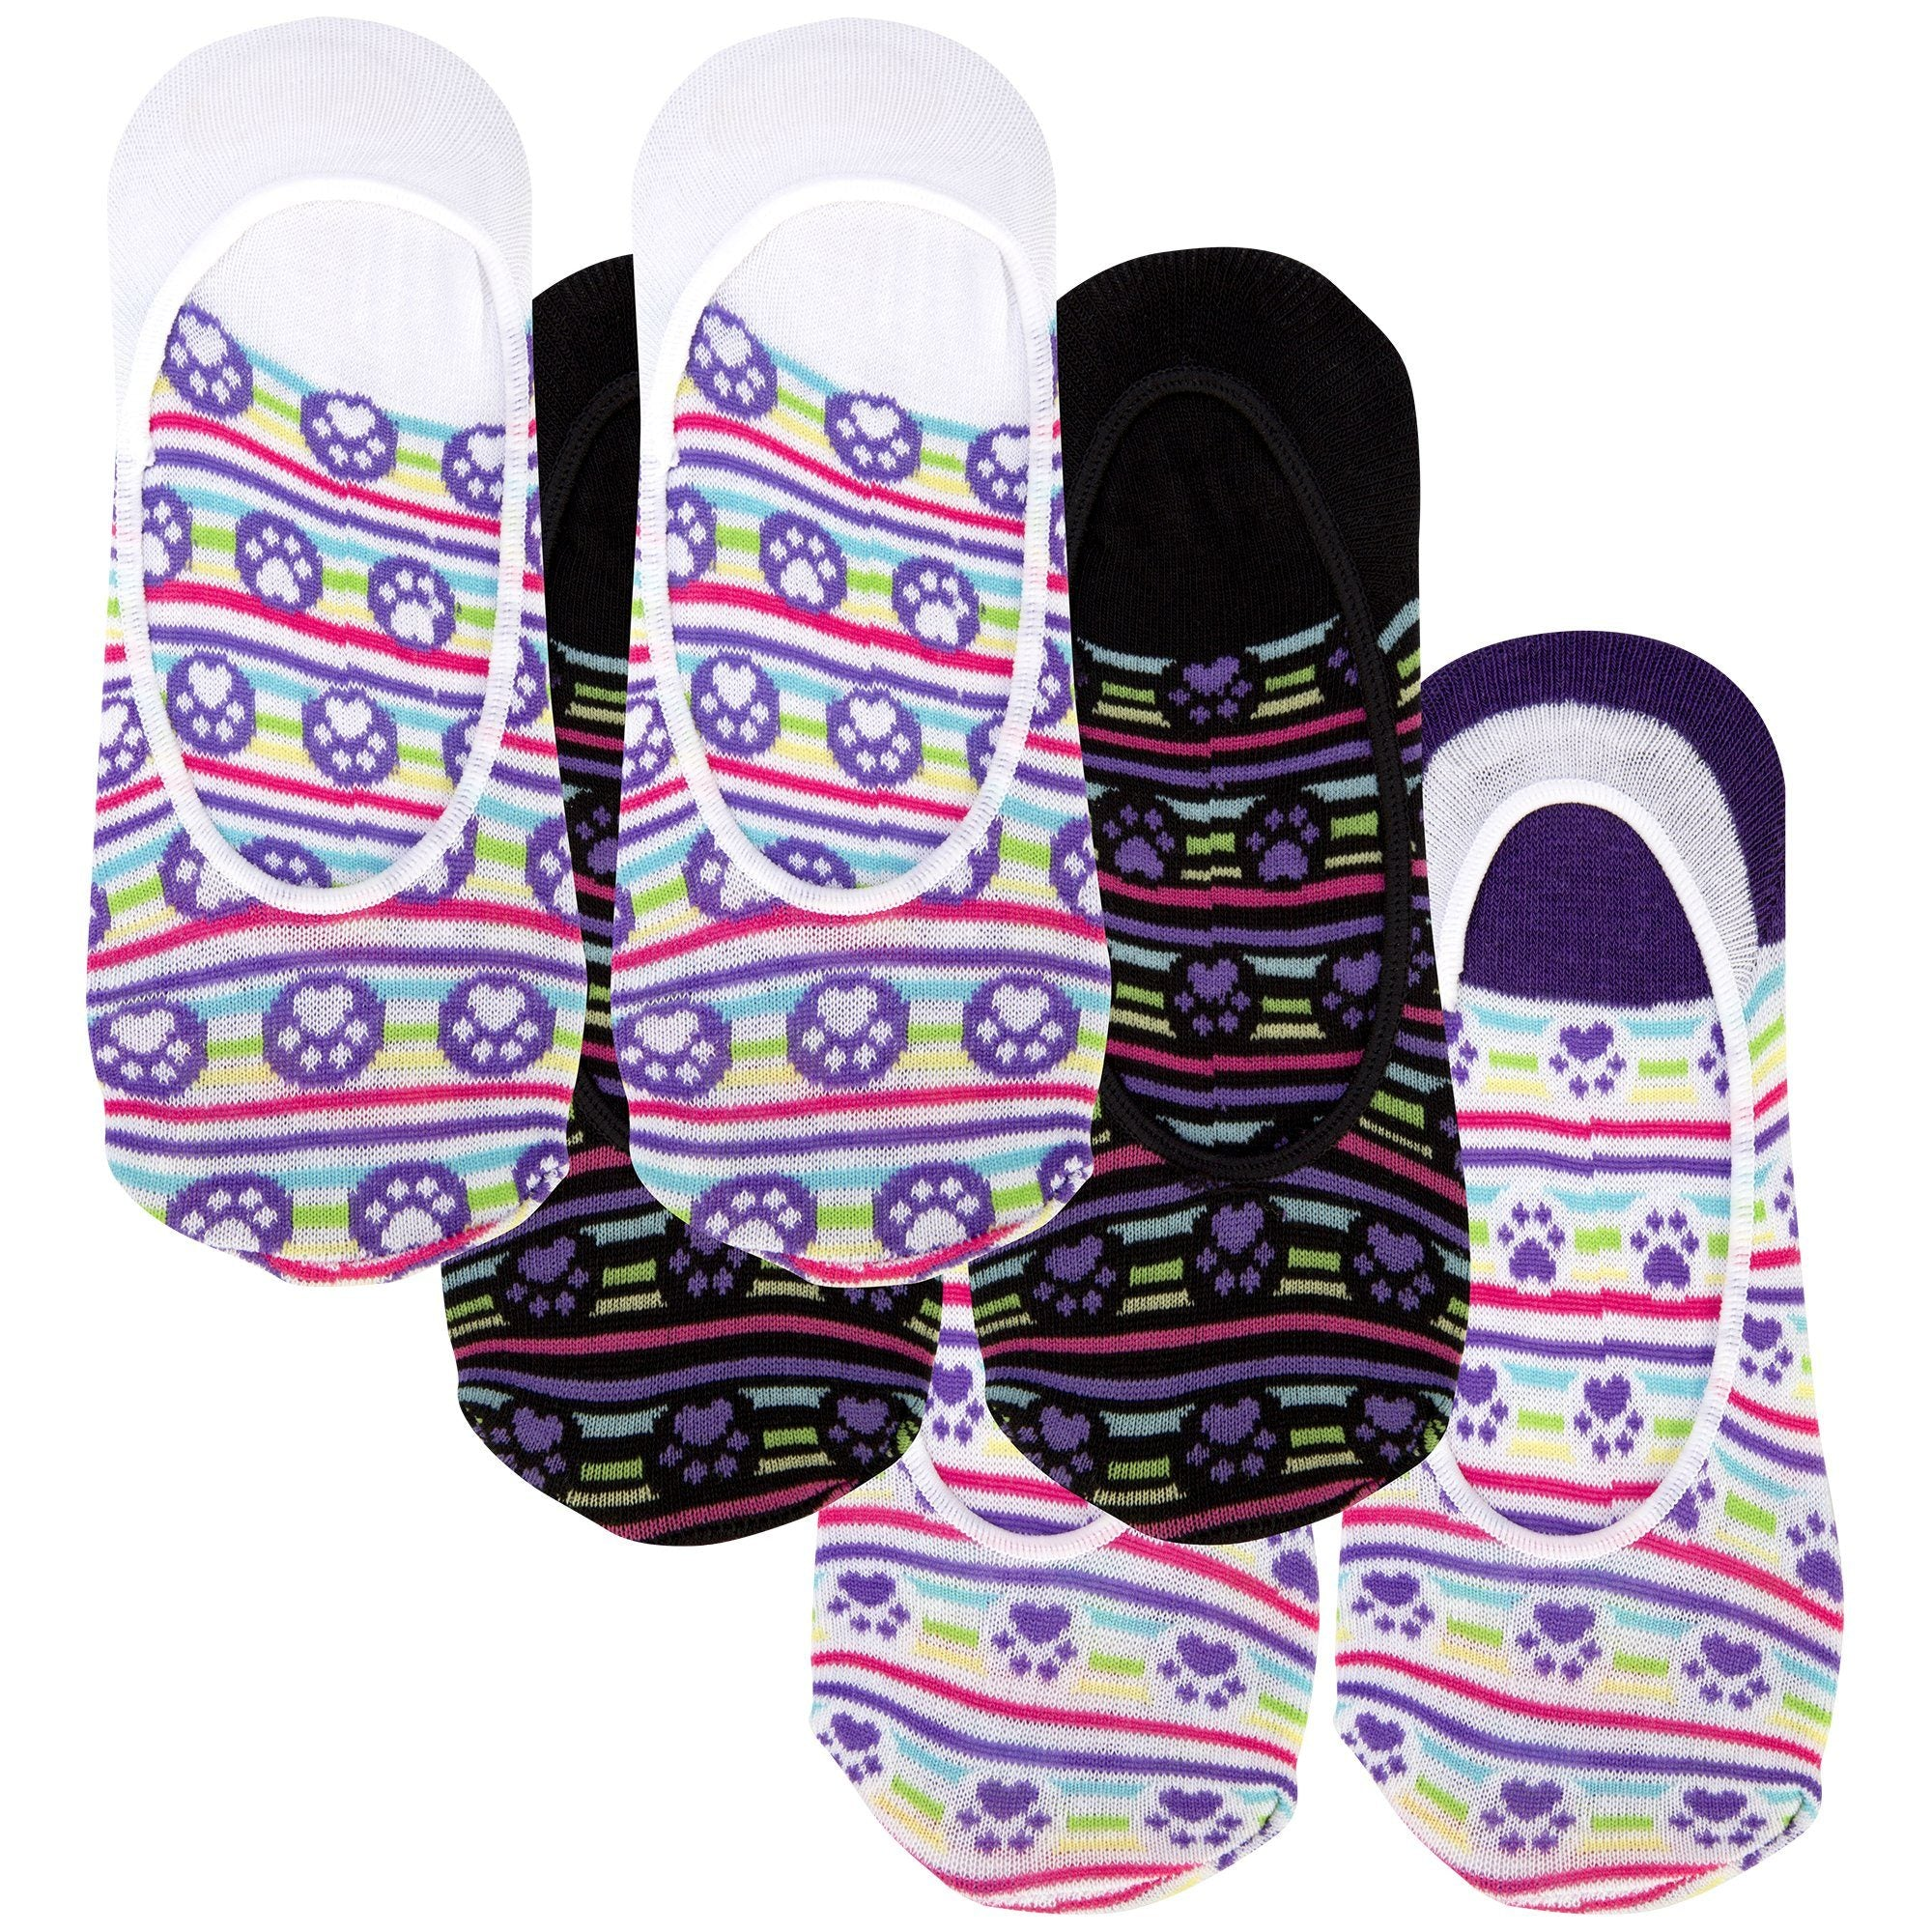 $5.99 - Paws Galore™ No-Show Socks